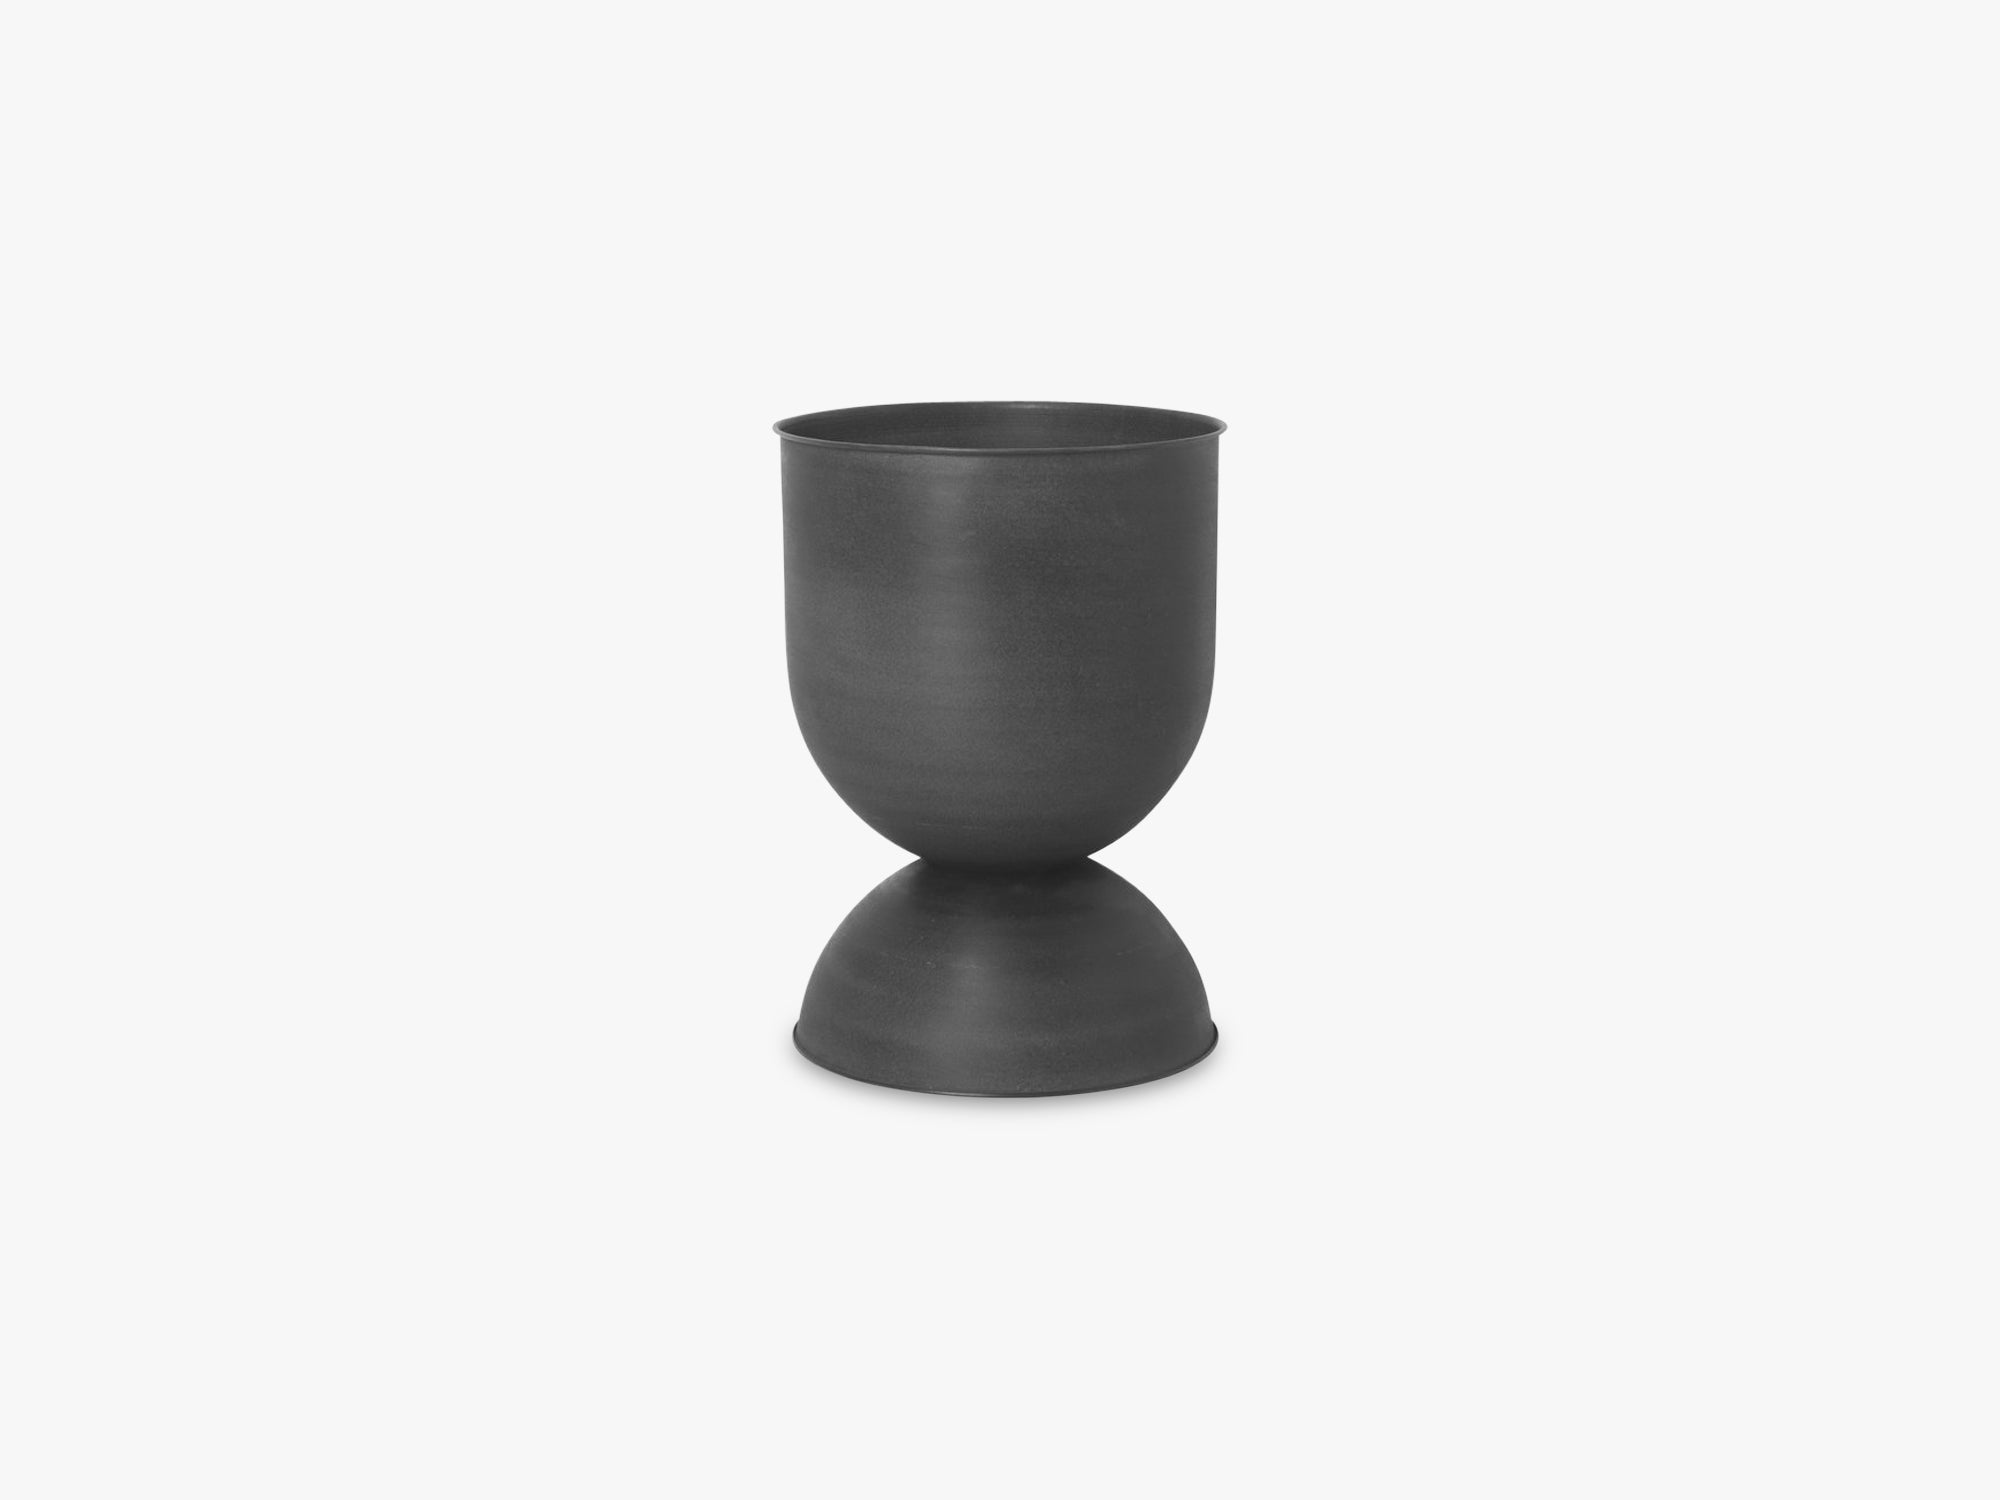 Hourglass Pot - Medium - Black/Dark Grey fra Ferm Living